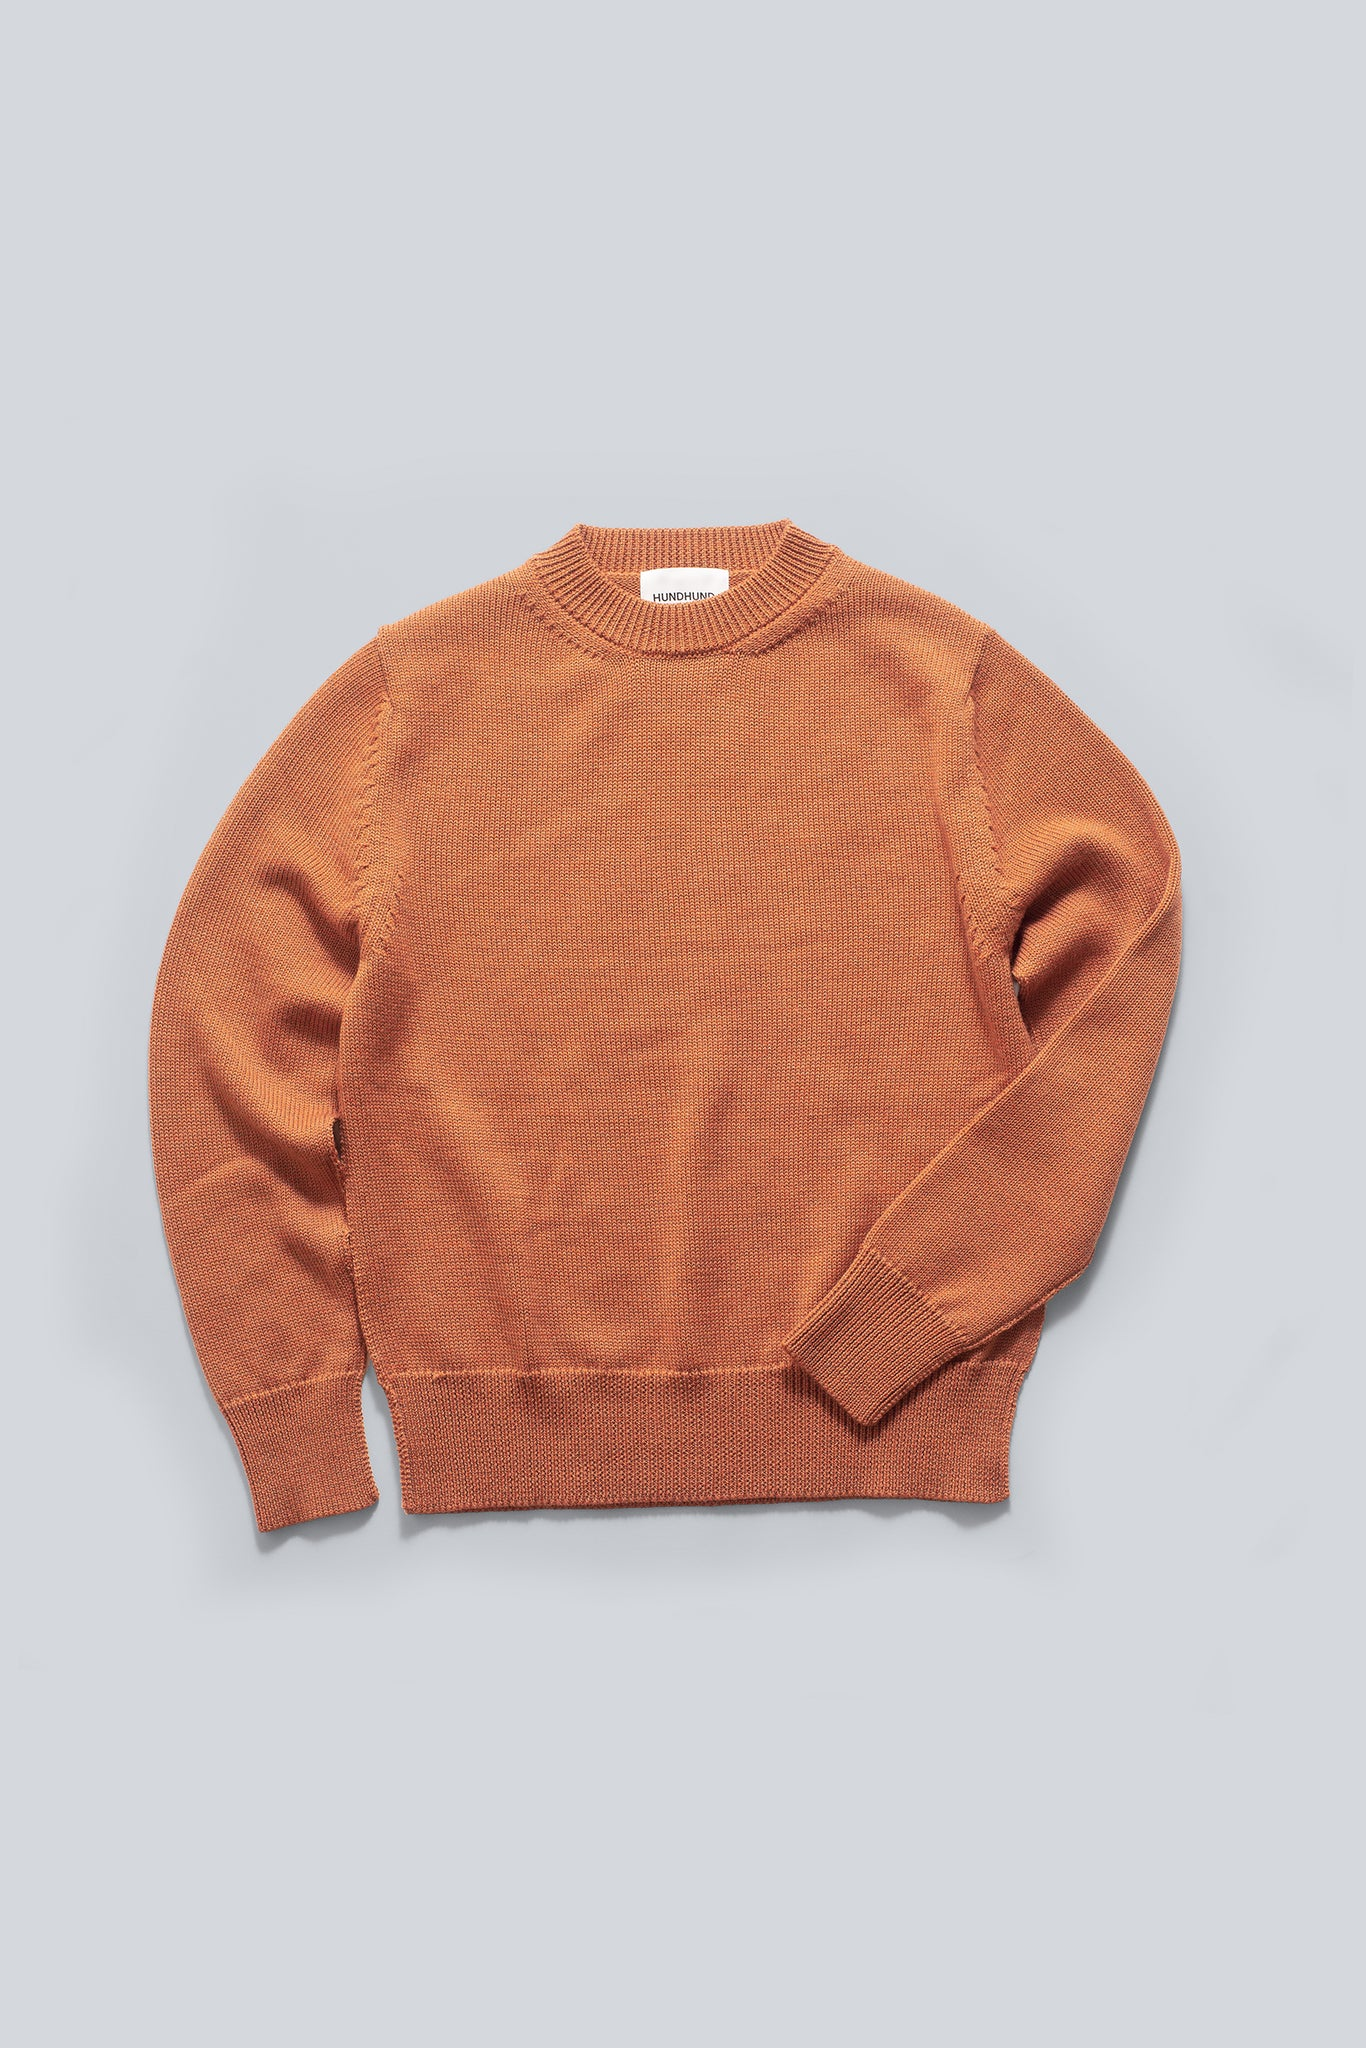 Aatu Sweater